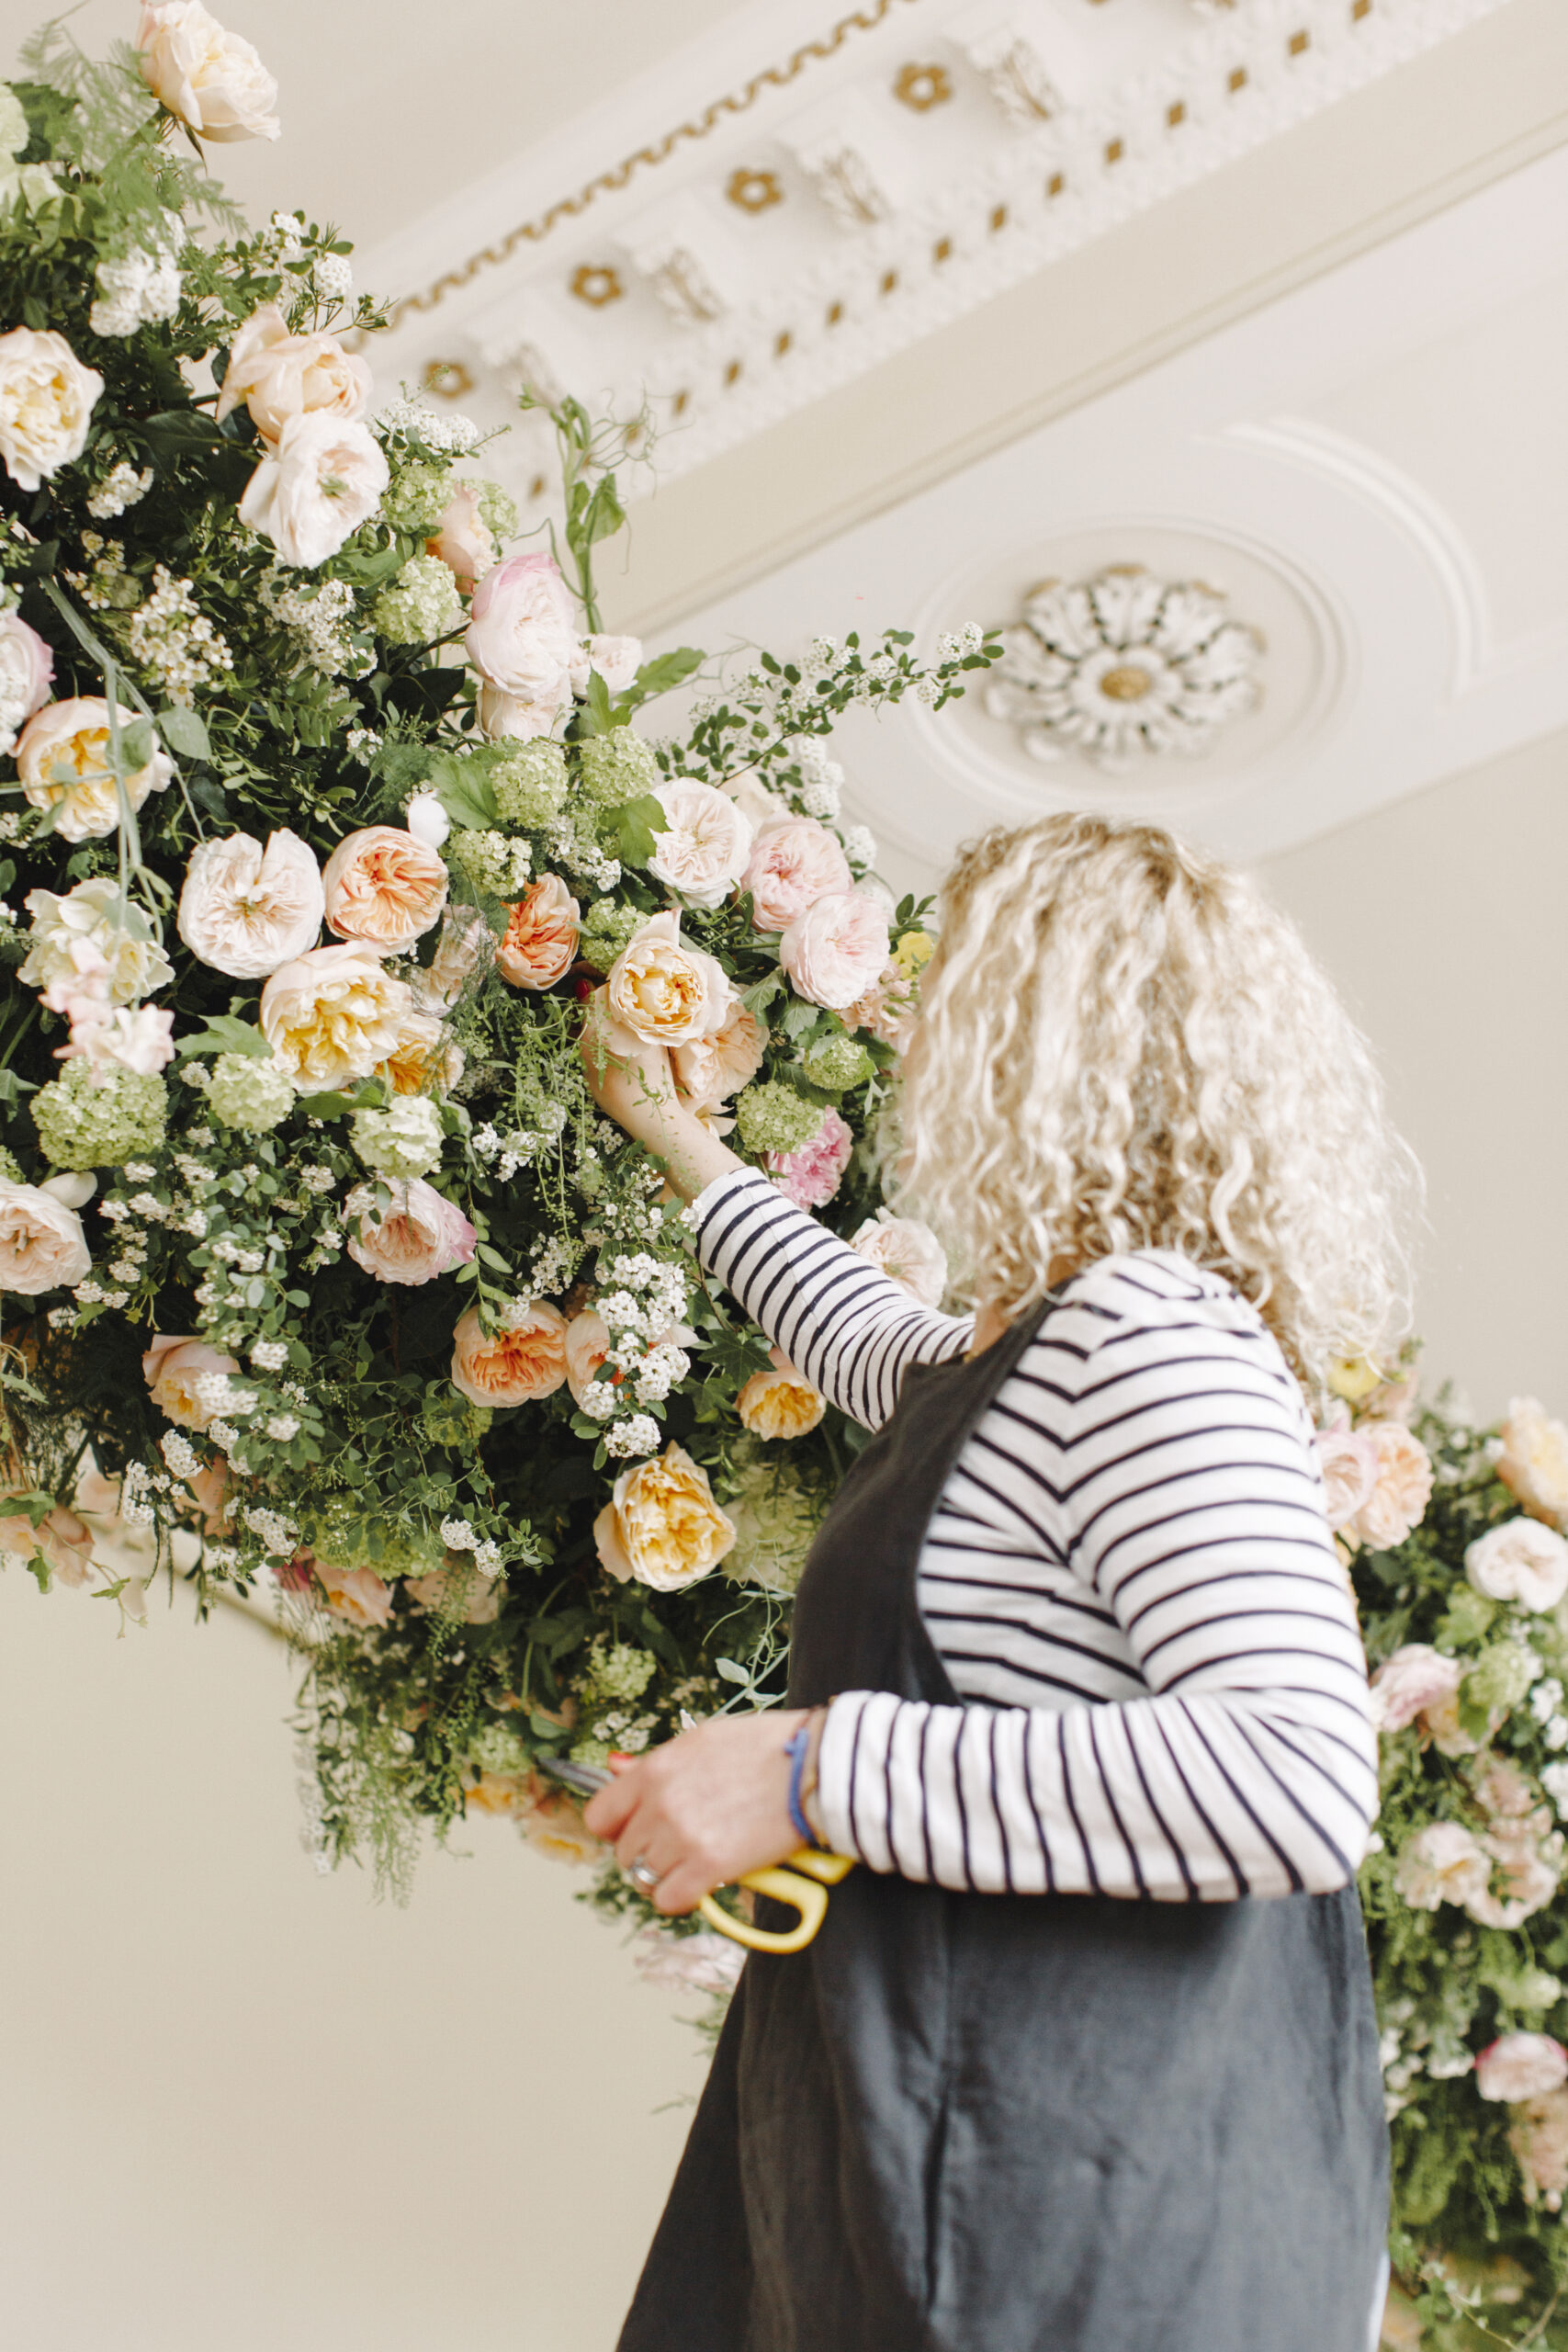 Florist working with David Austin Roses